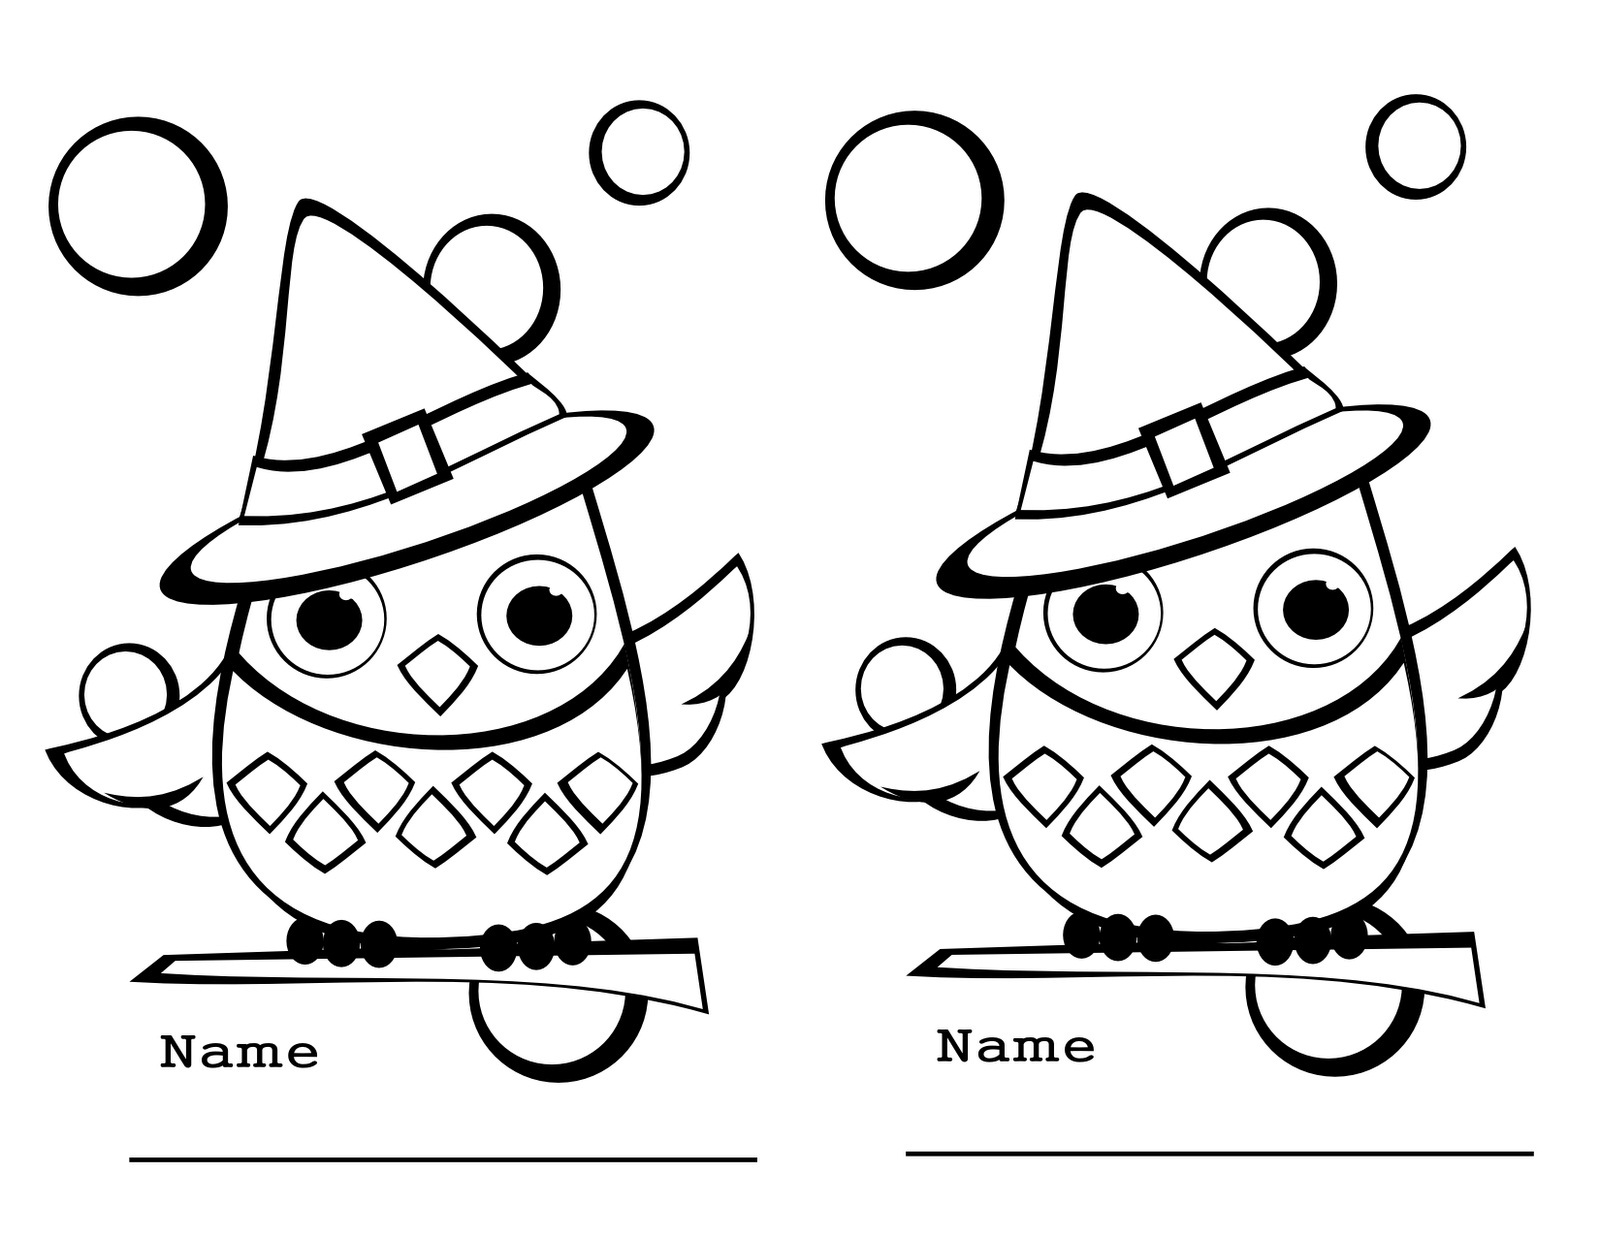 coloring pages for preschool free printable preschool coloring pages best coloring pages preschool for coloring